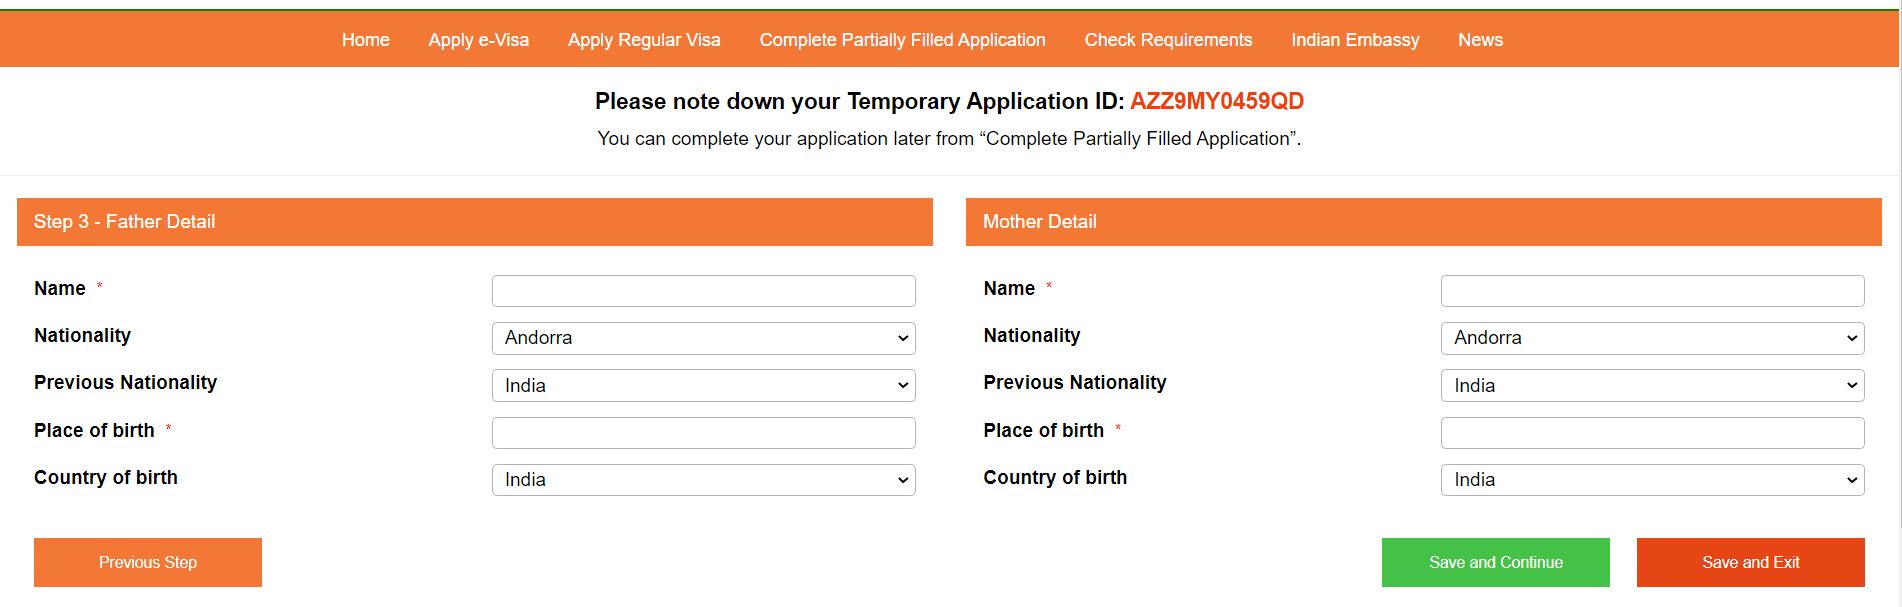 application for India visa